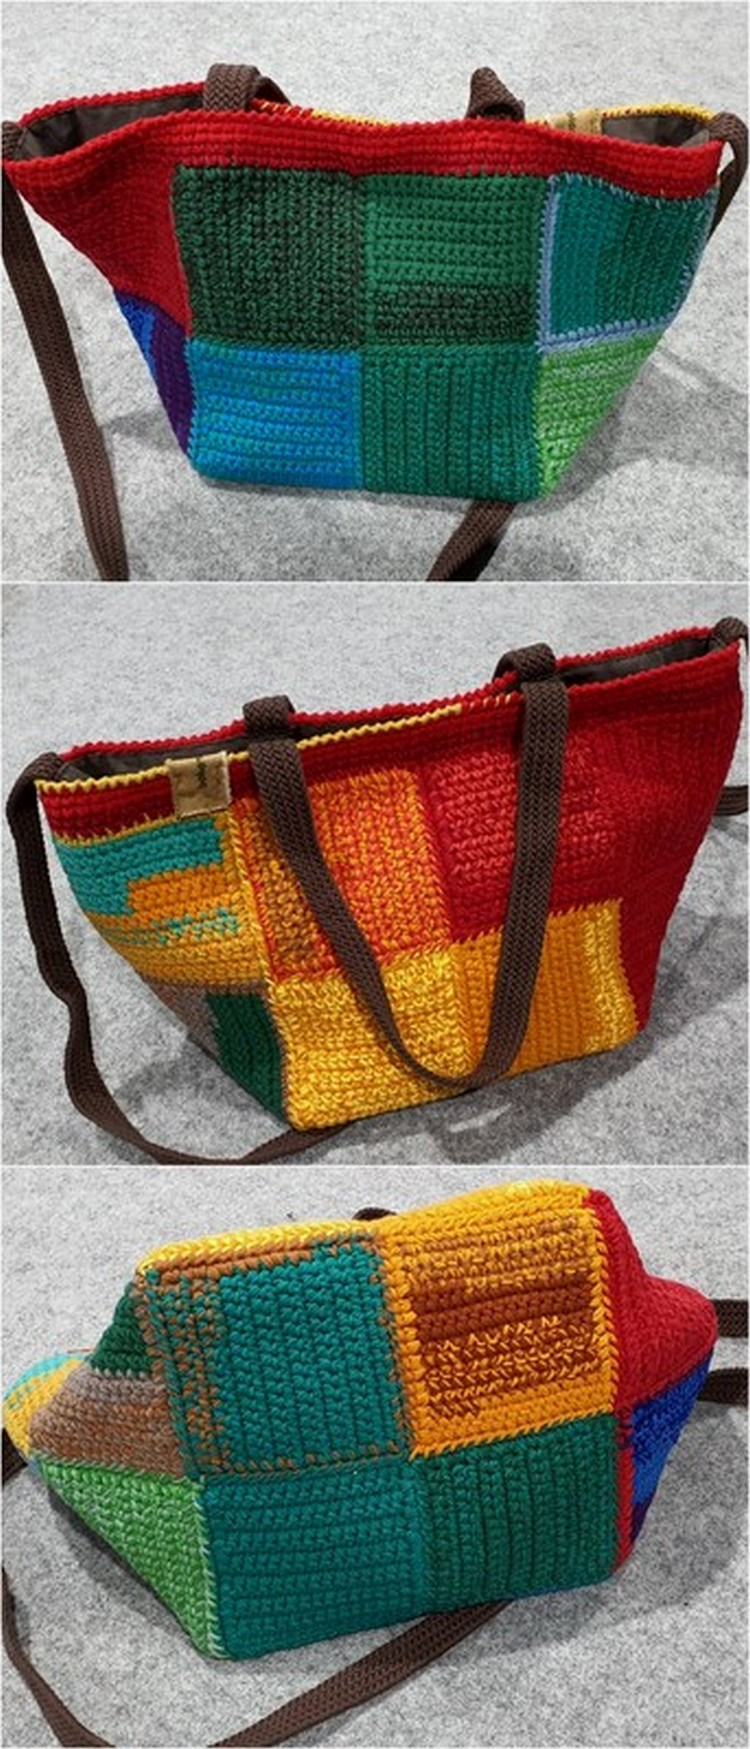 Small Squares Bag Free Crochet Pattern